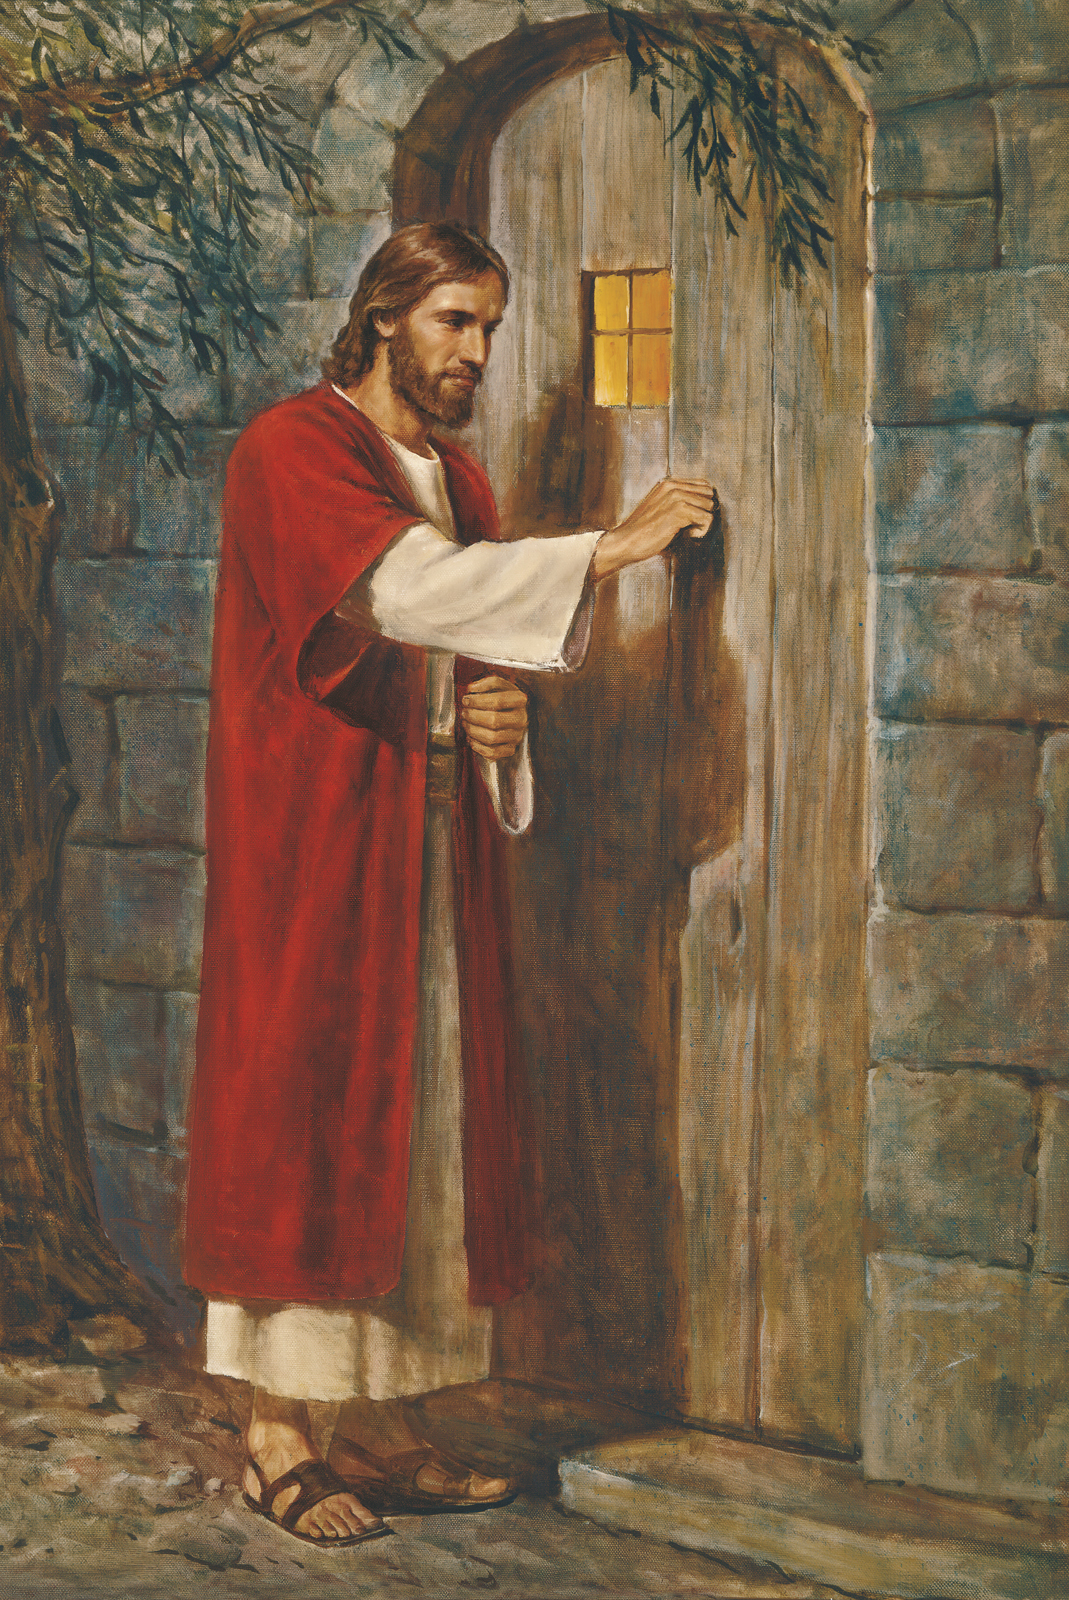 Jesus at the Door (Jesus Knocking at the Door).